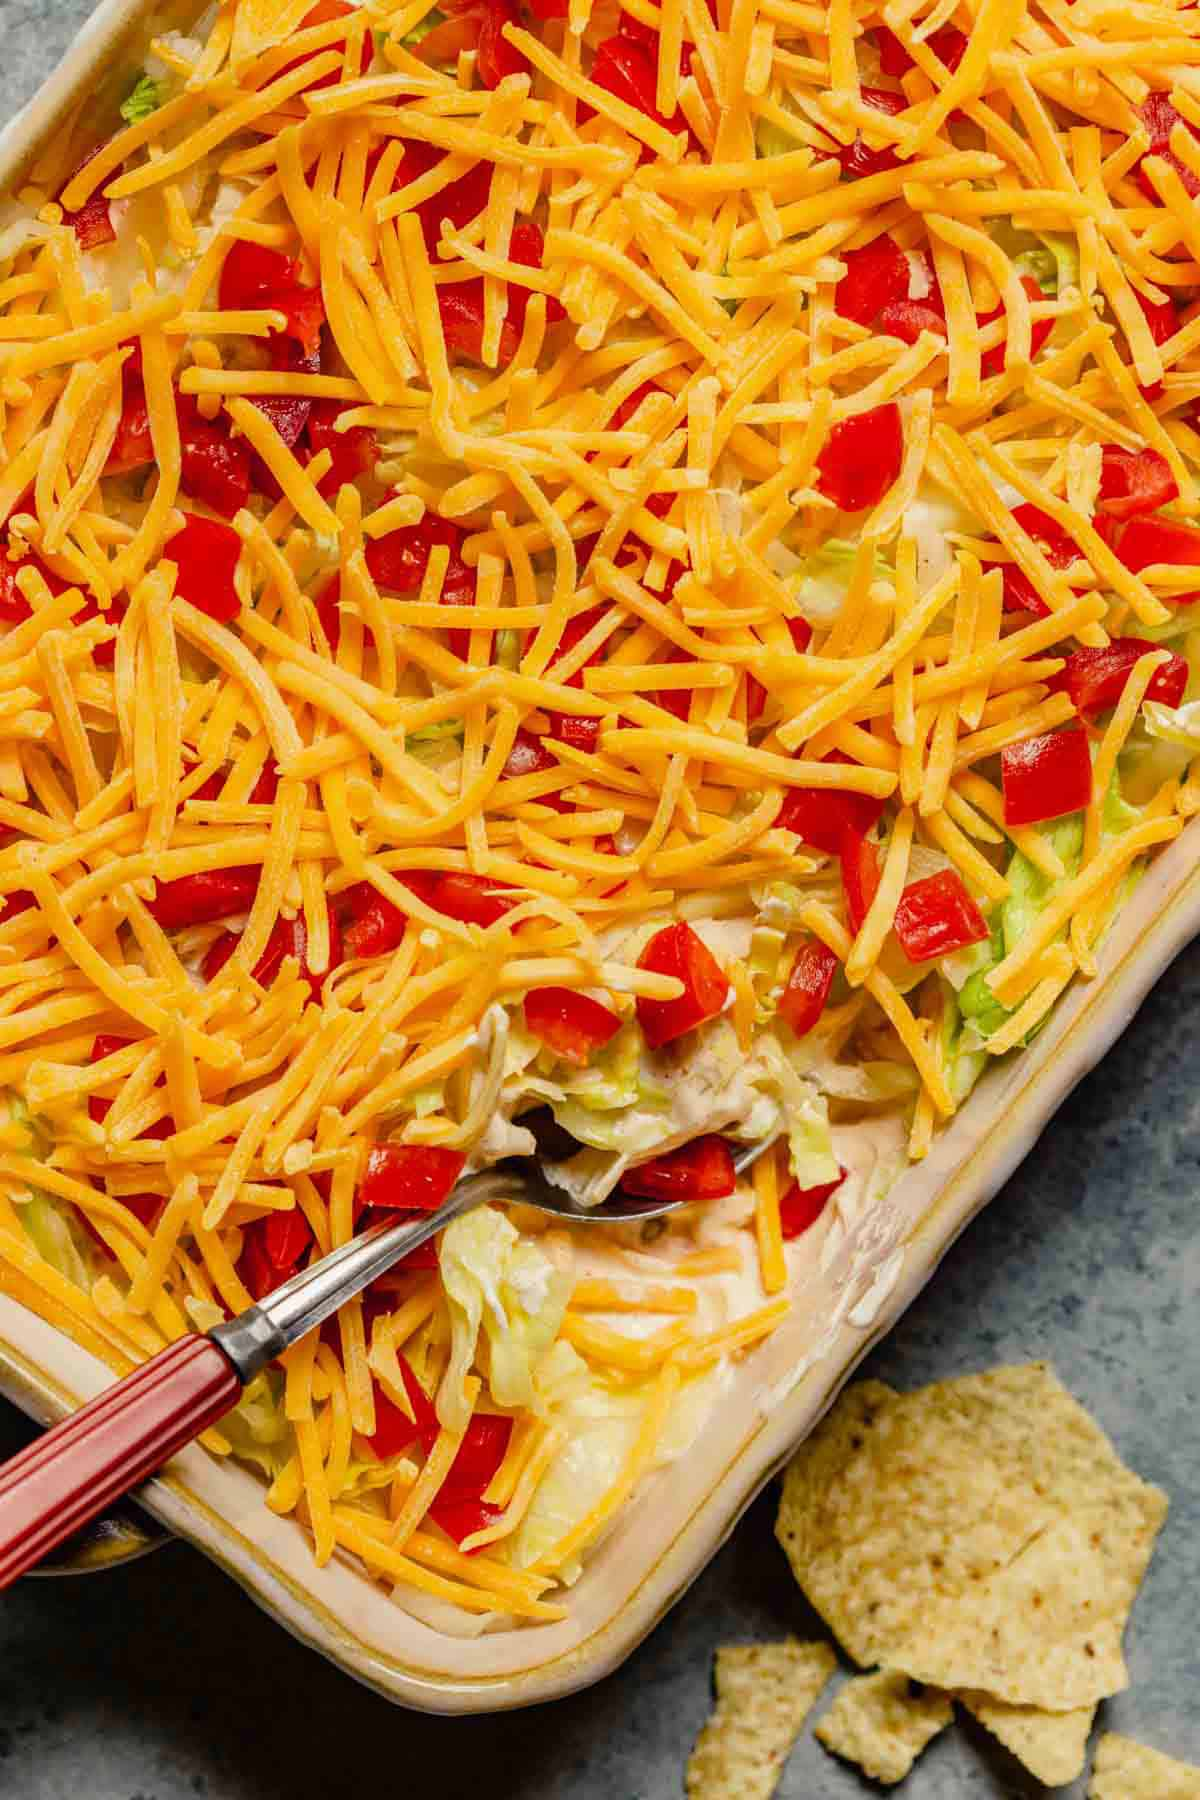 A casserole dish with taco dip and a red handled spoon in the bottom right corner on a counter with a few tortilla chips.